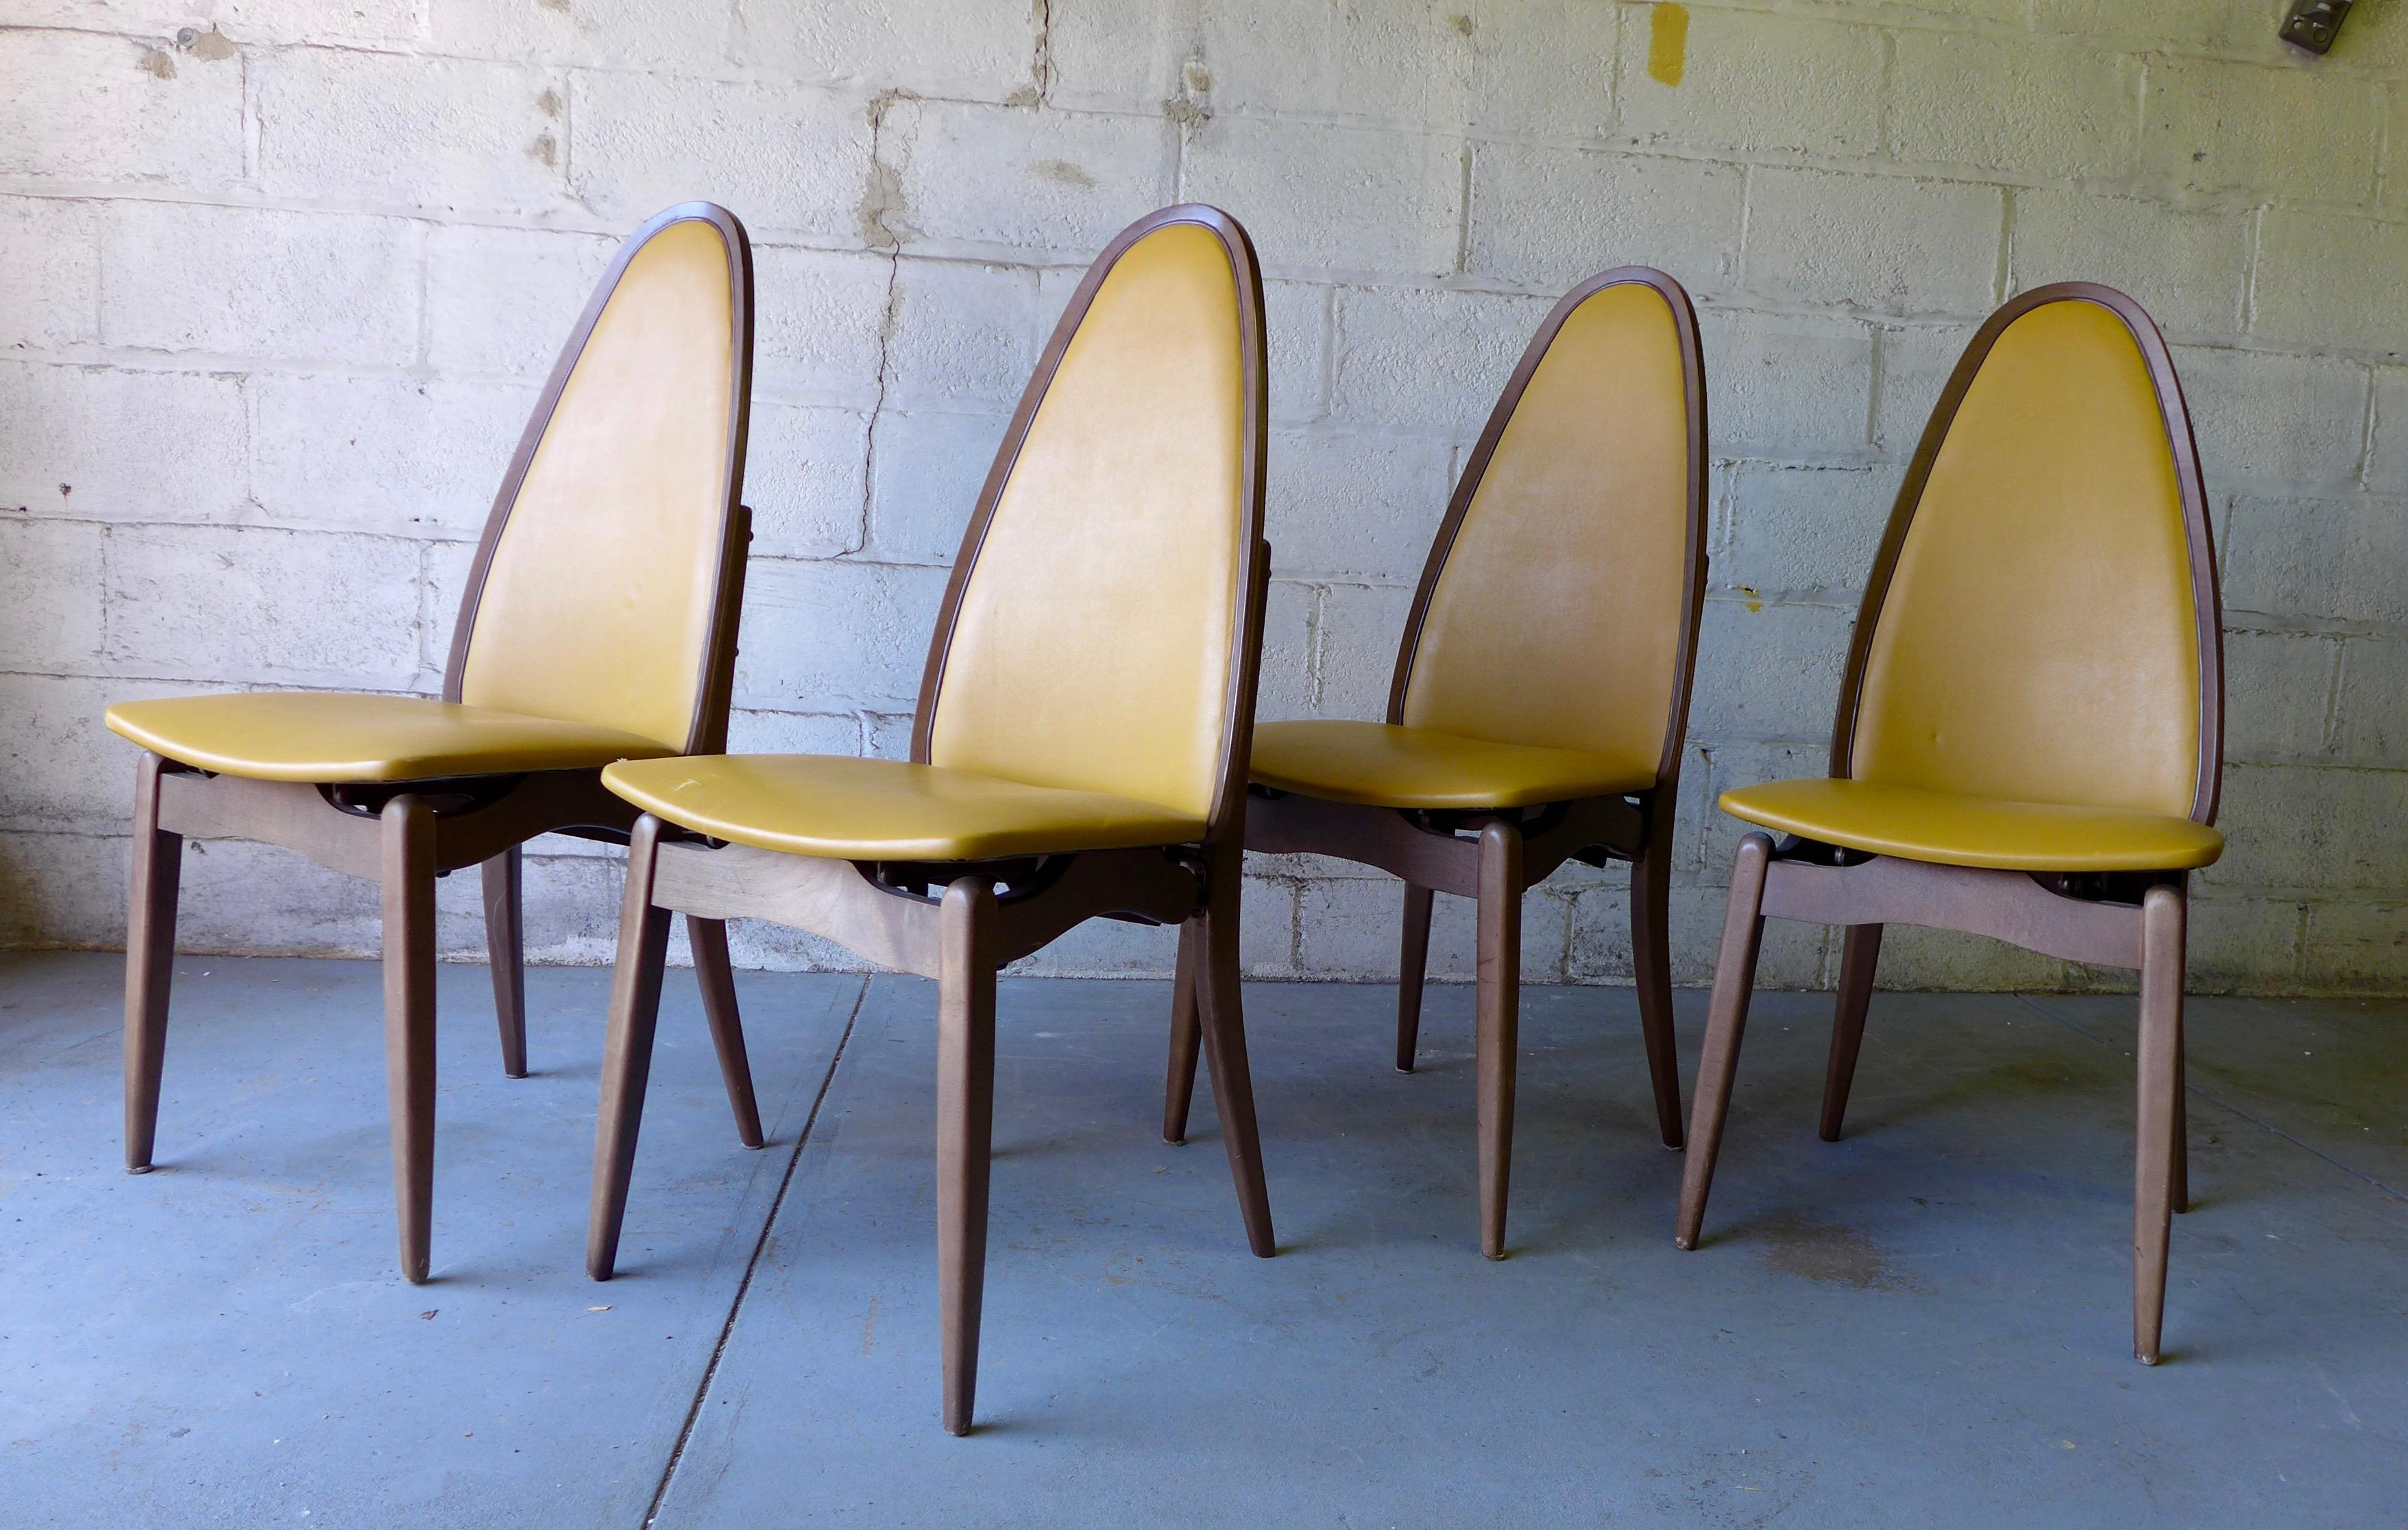 stakmore midcentury folding dining chairs set of 4 image 2 of 9